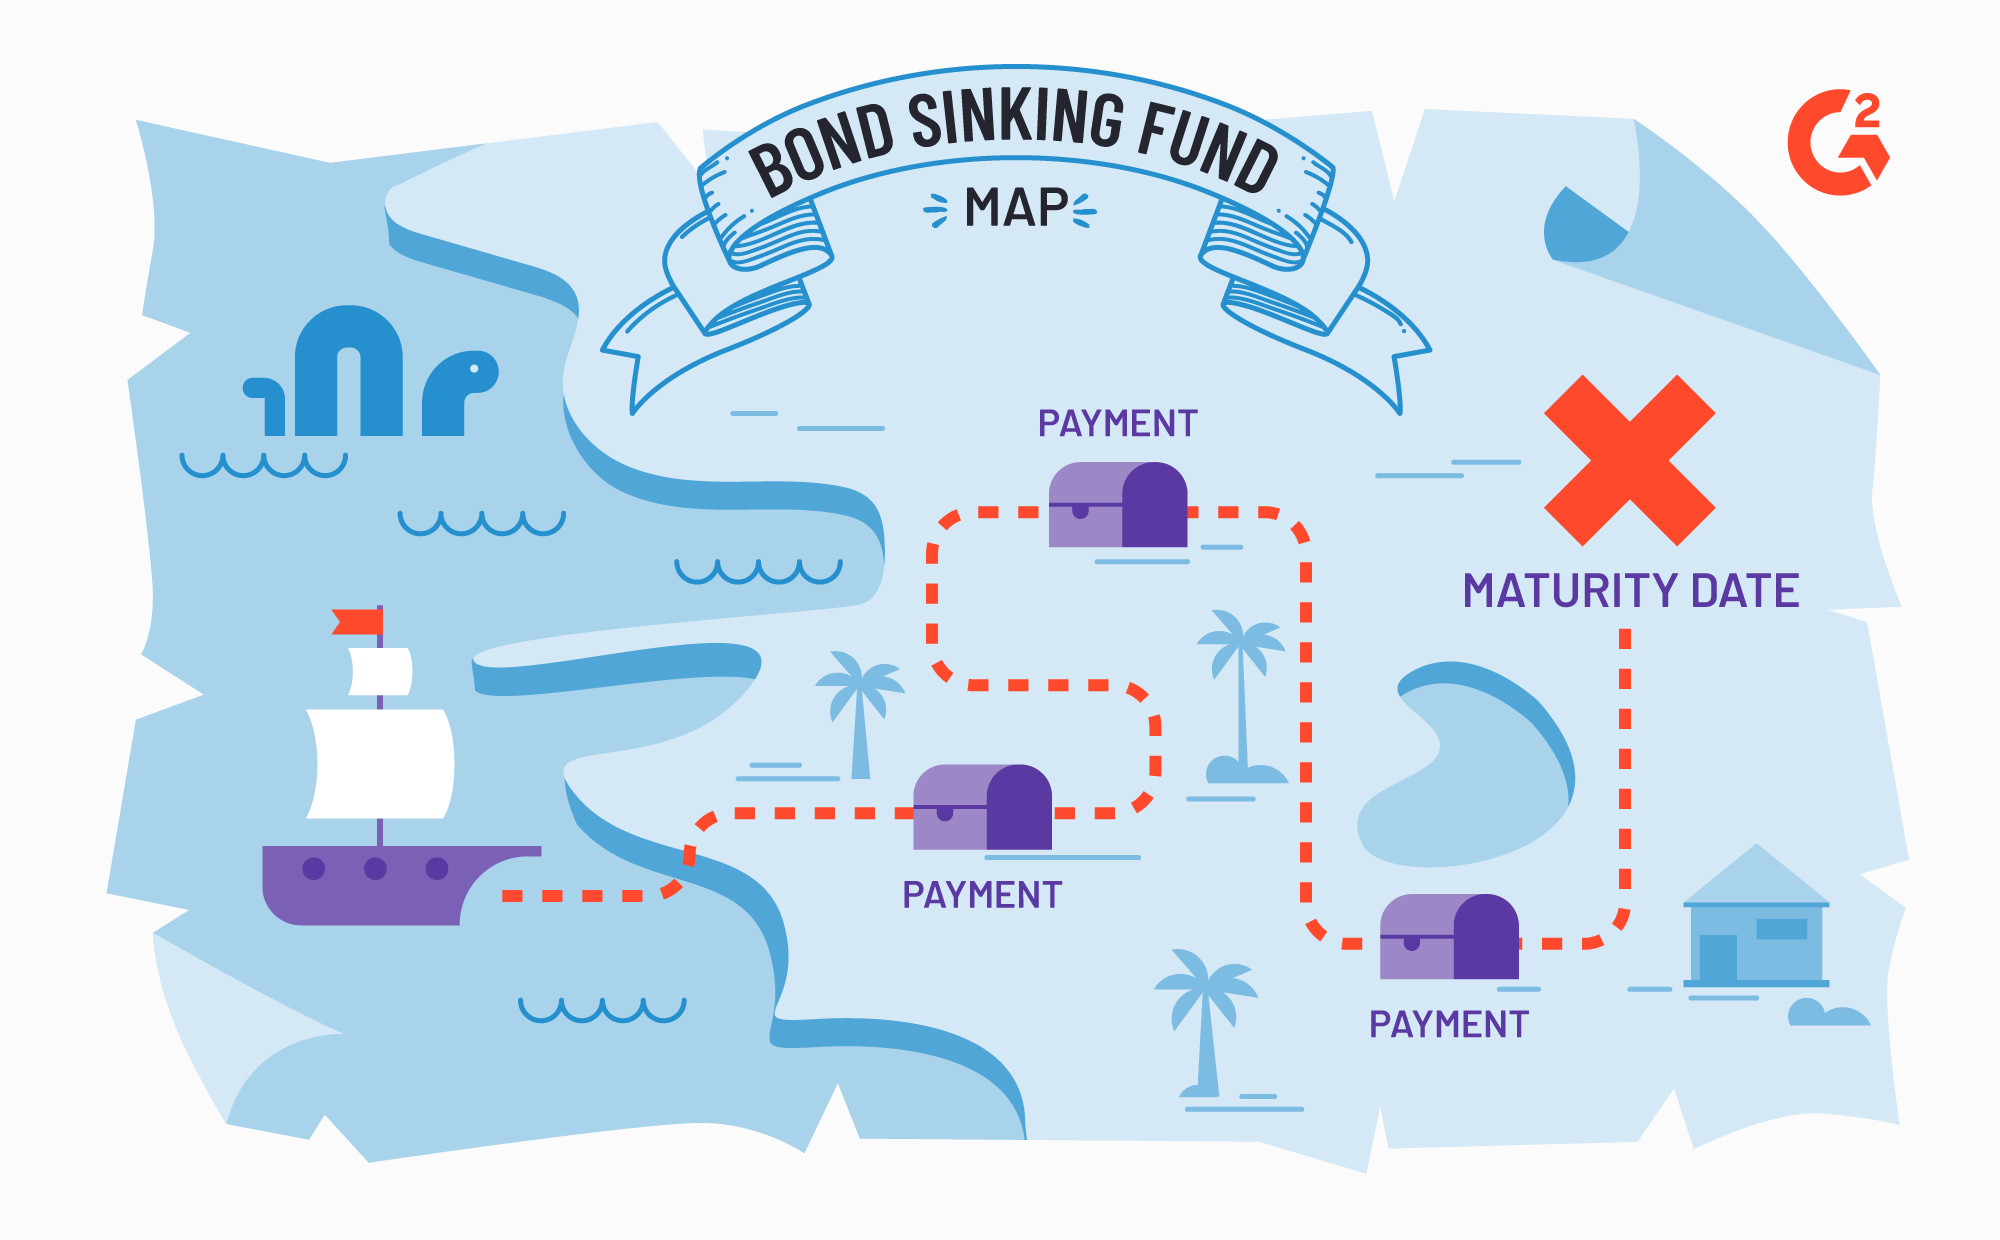 Map illustrating sinking fund payments